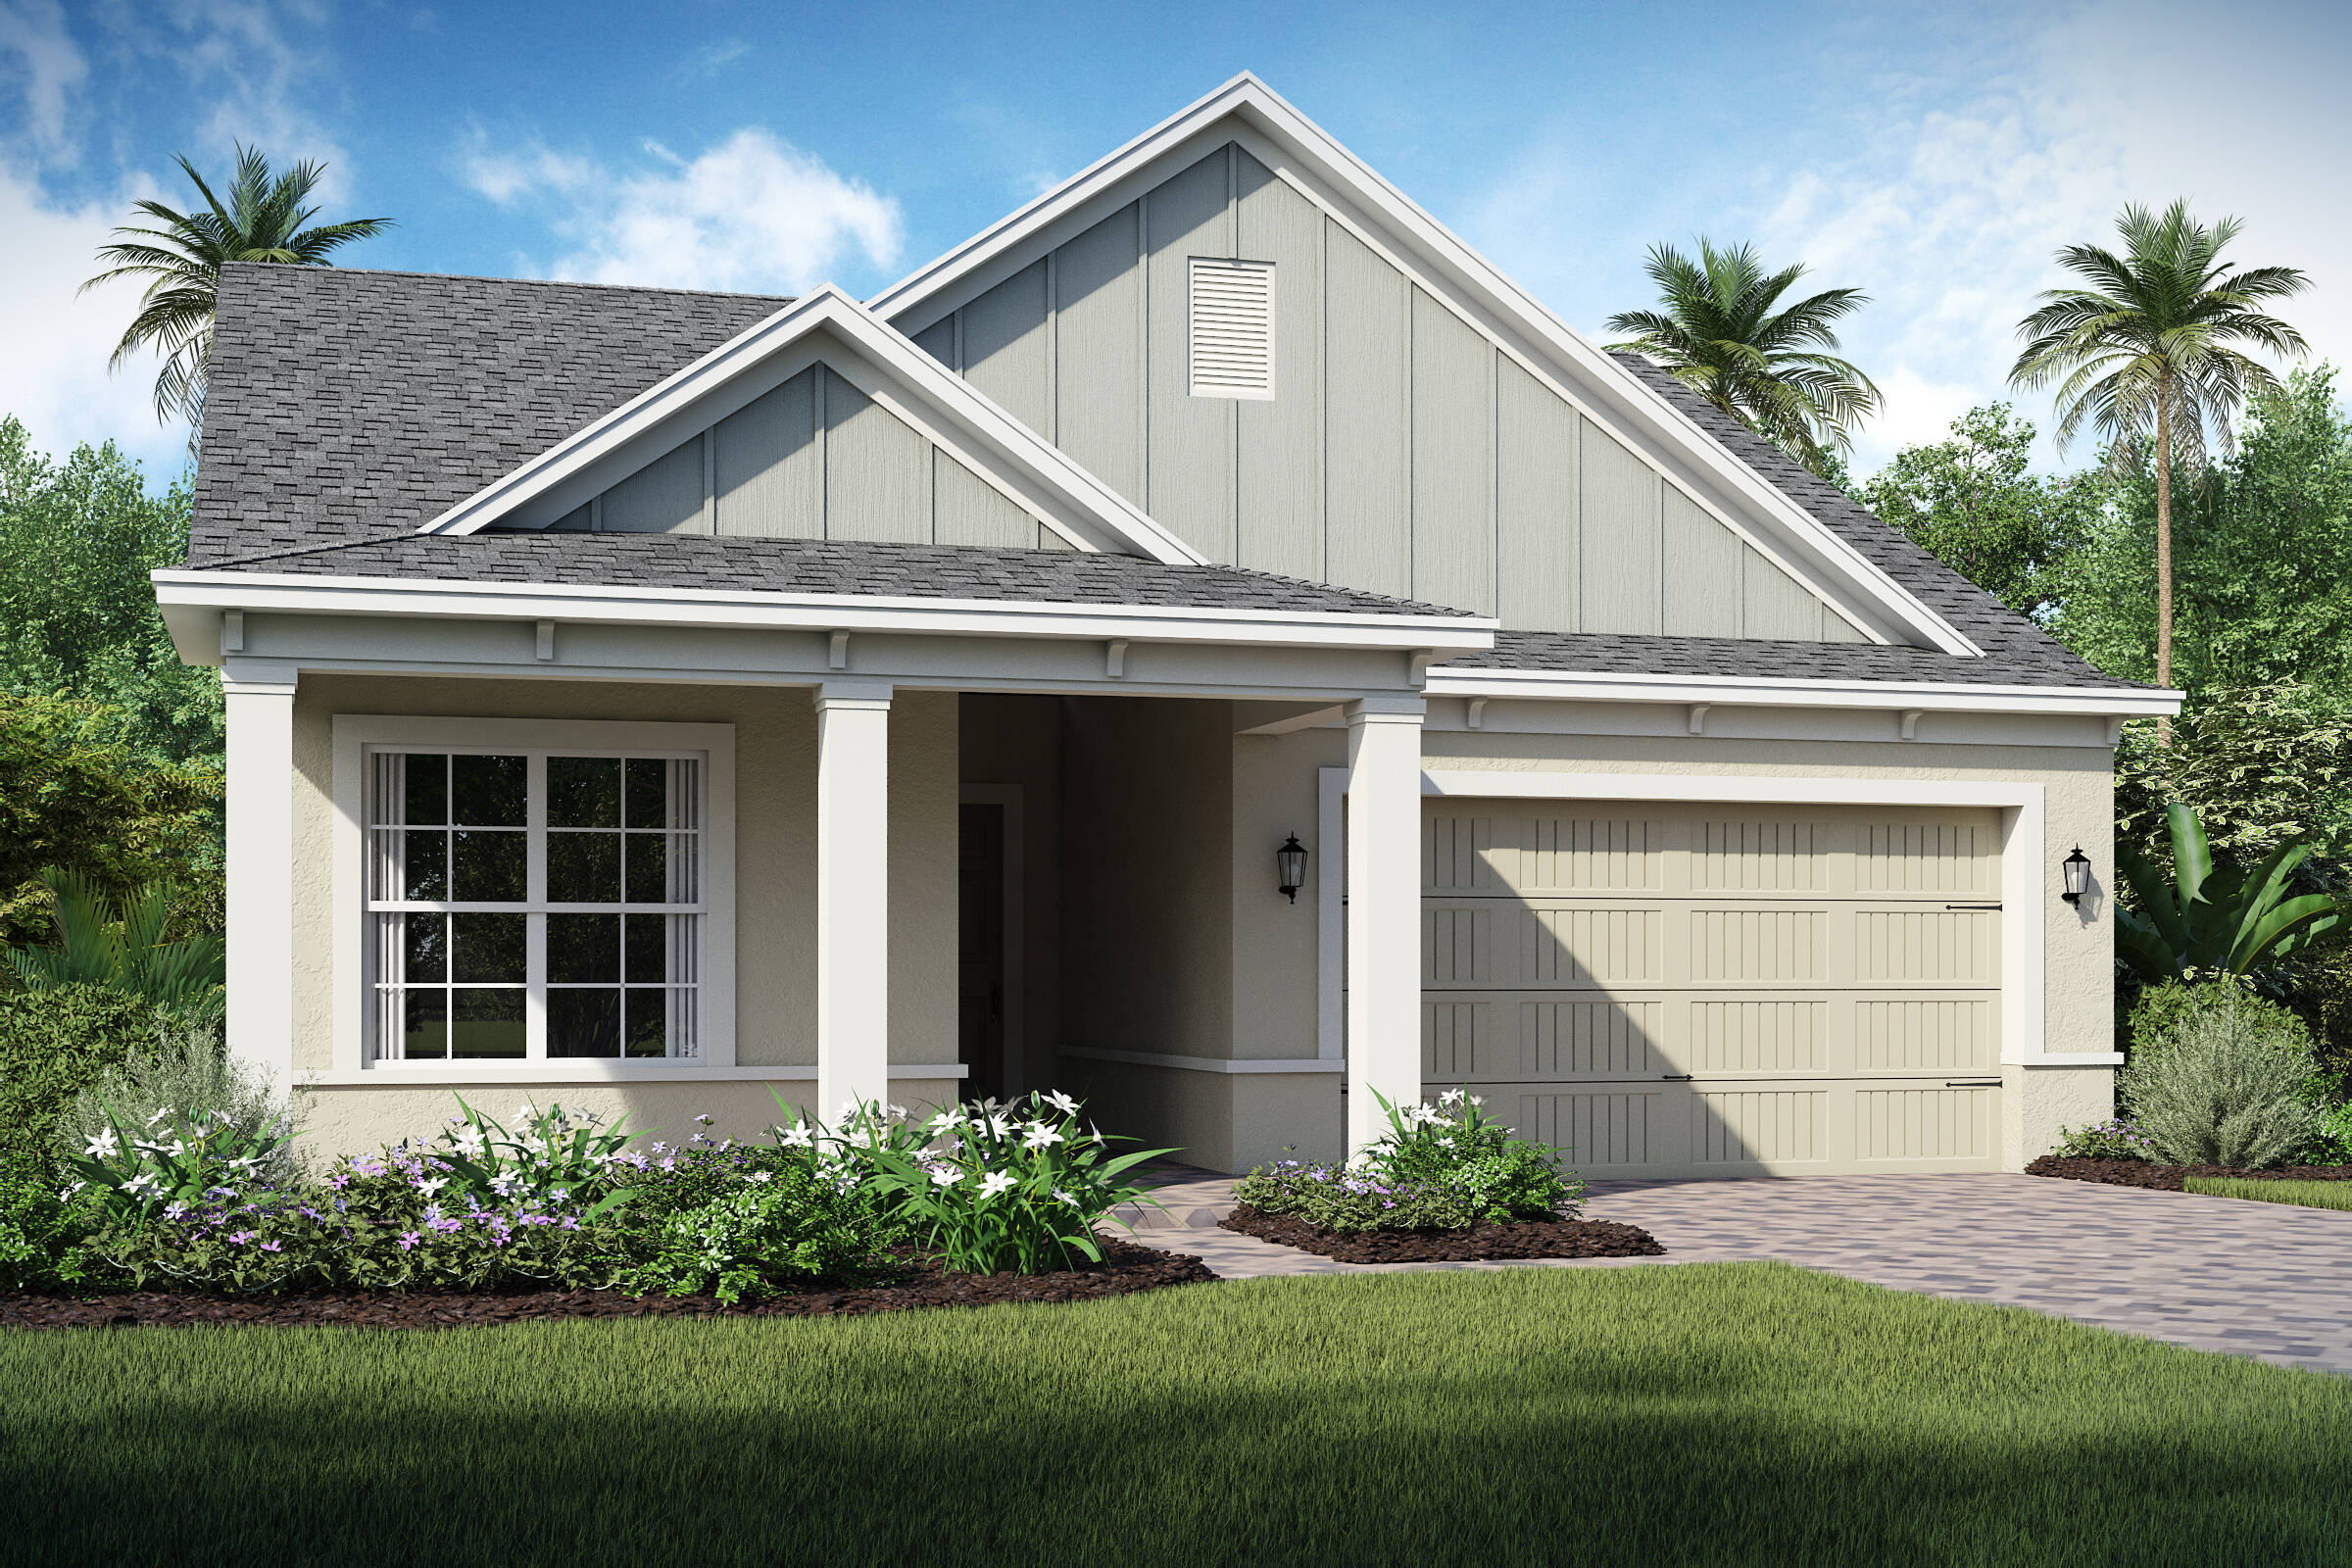 Barbados-C-Bonus-elev new homes in orlando